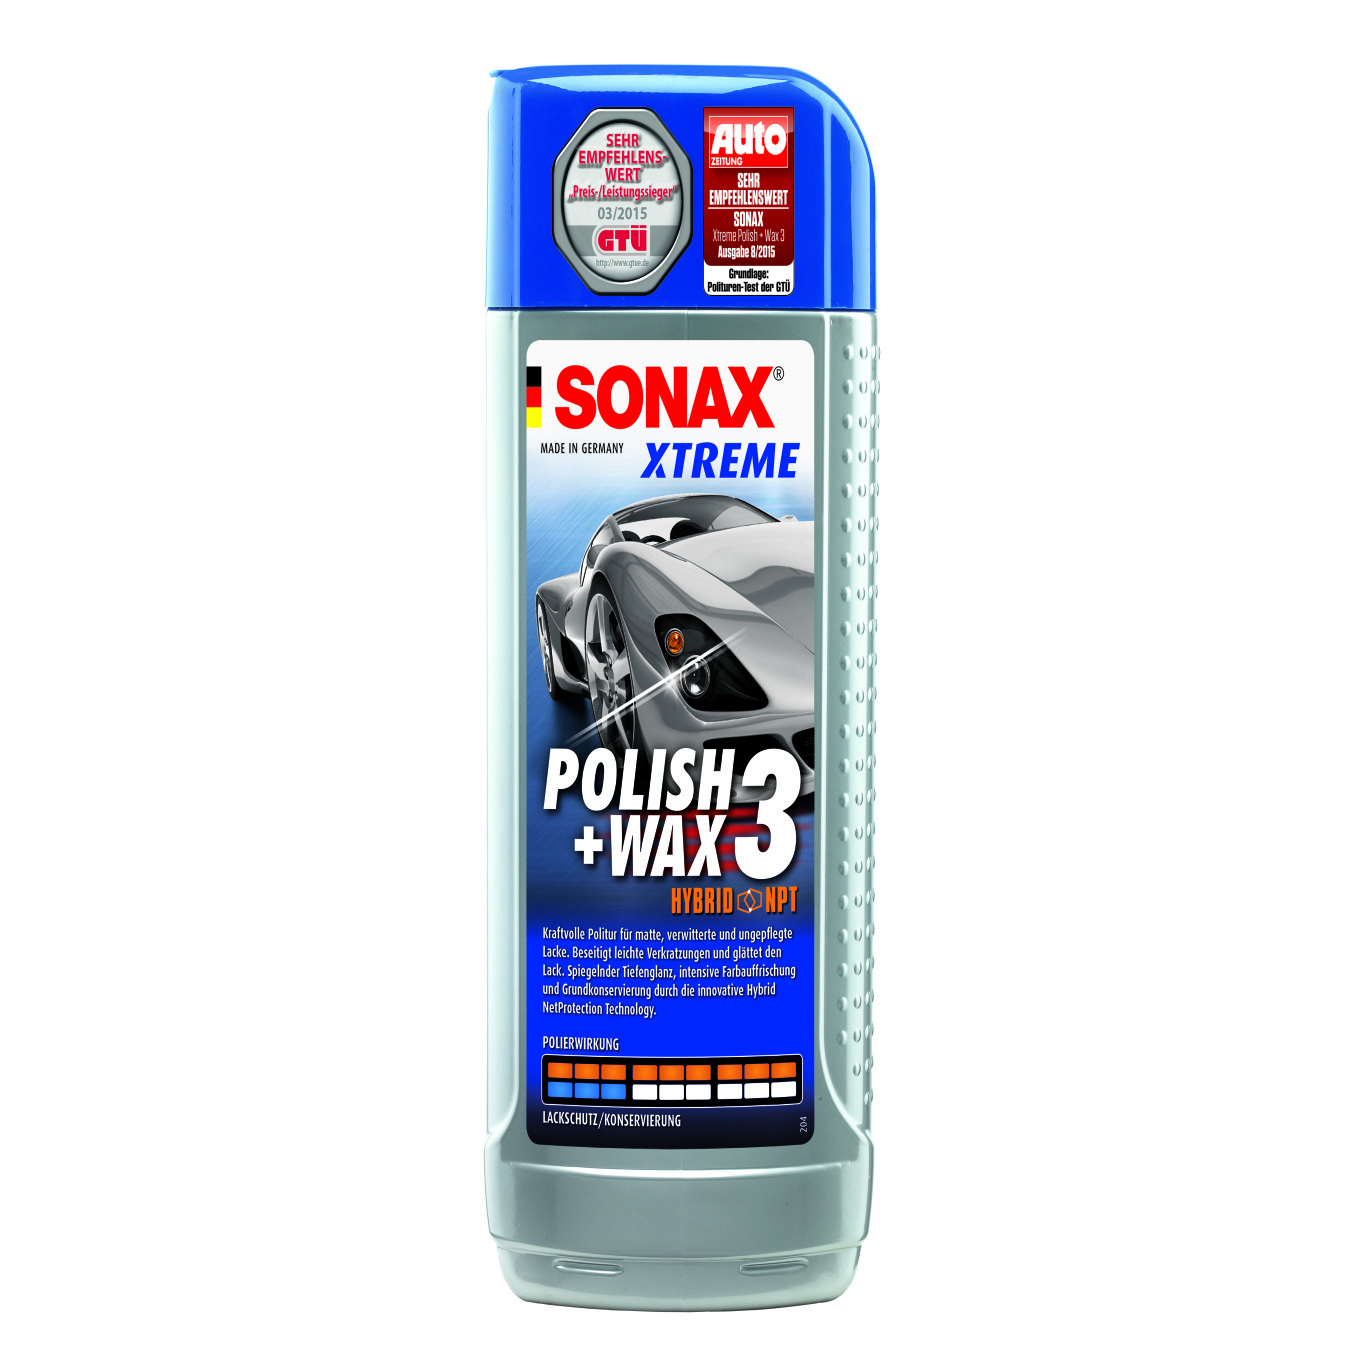 sonax xtreme polish wax 3 500 ml preisvergleich. Black Bedroom Furniture Sets. Home Design Ideas